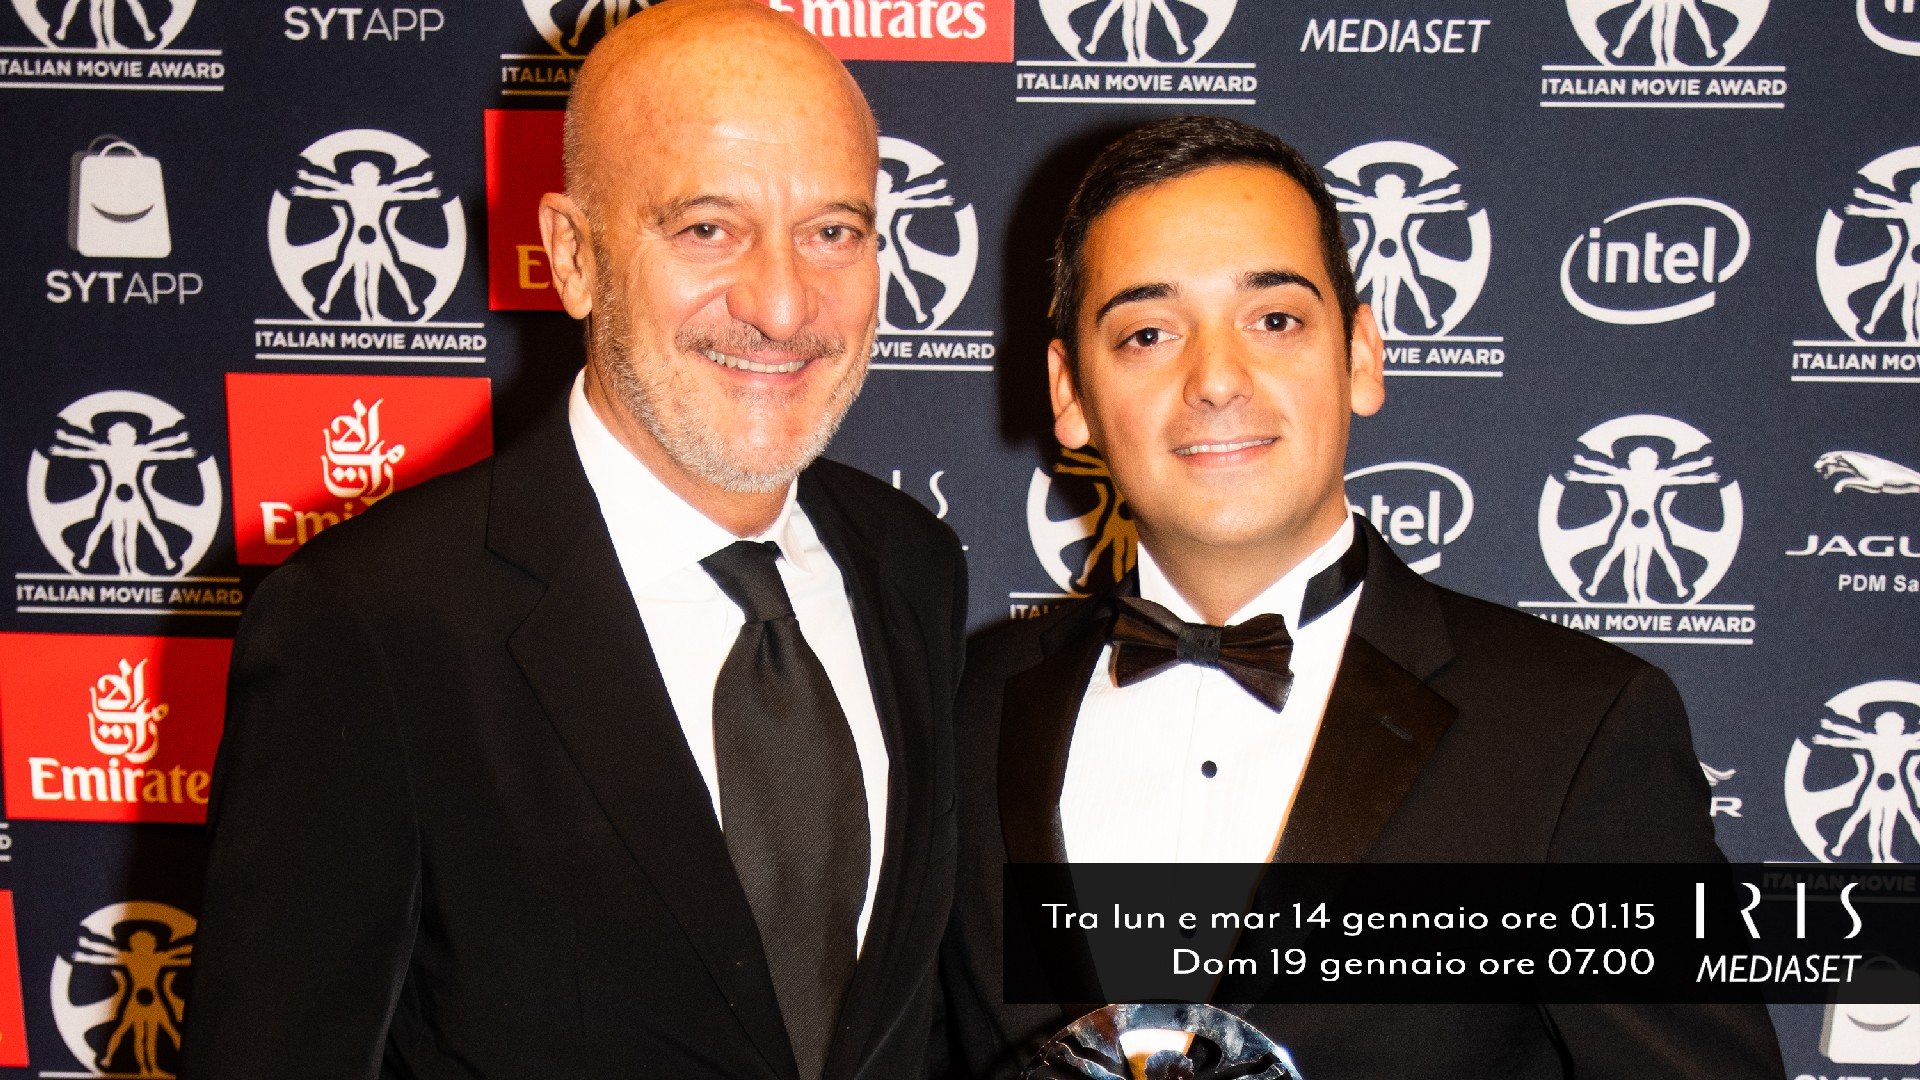 italian_movie_award_new_york_mediaset13